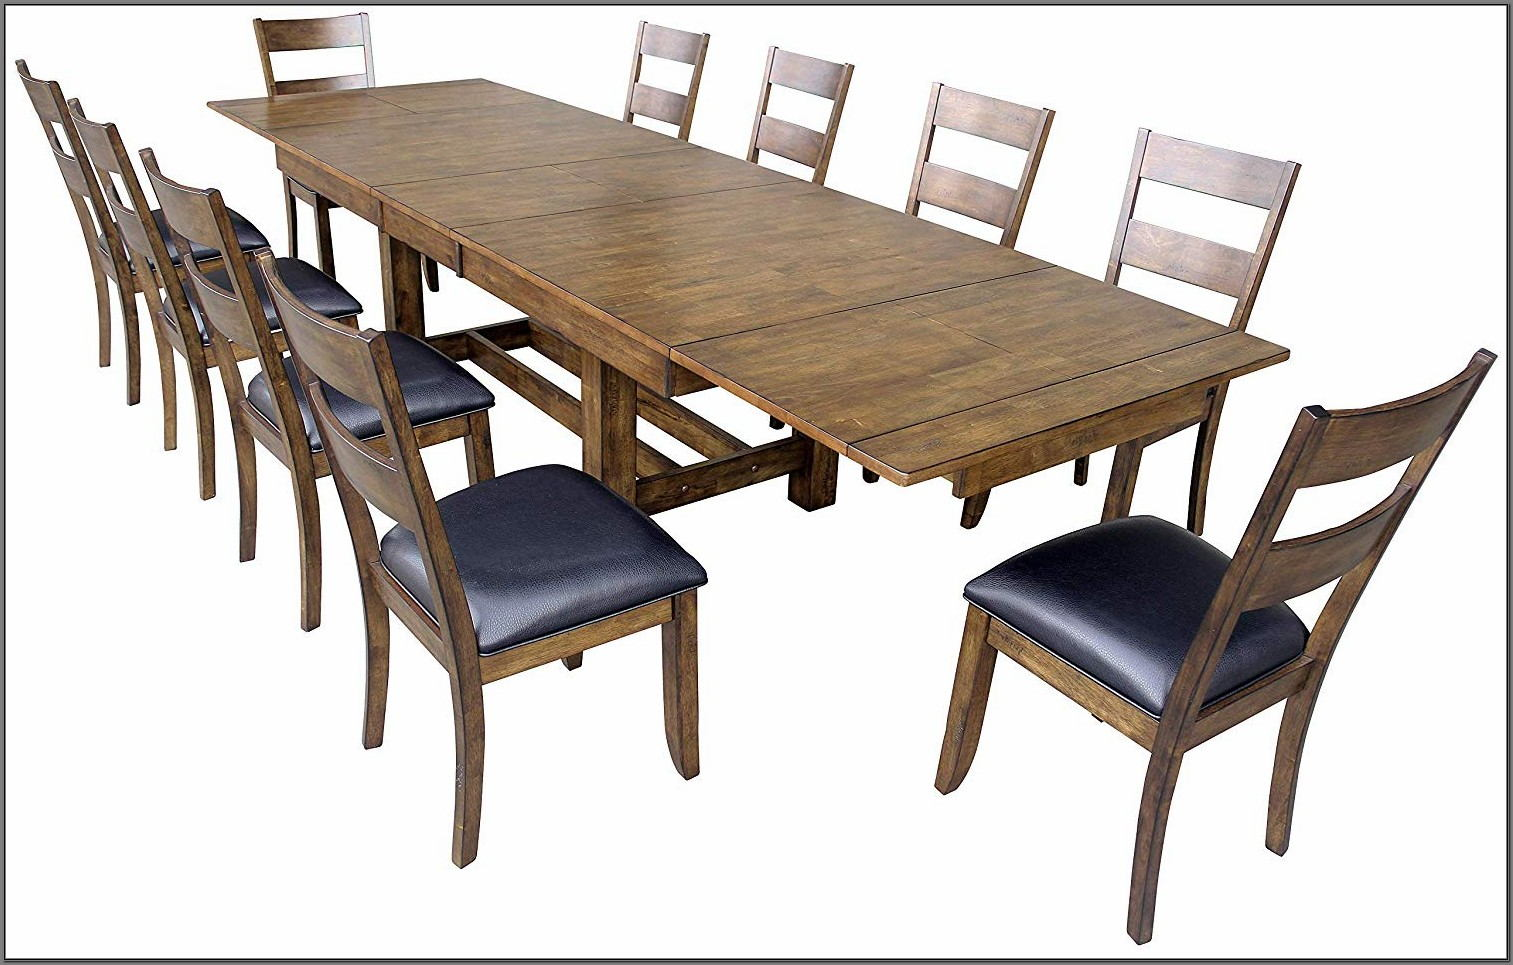 132 Inch Dining Room Table